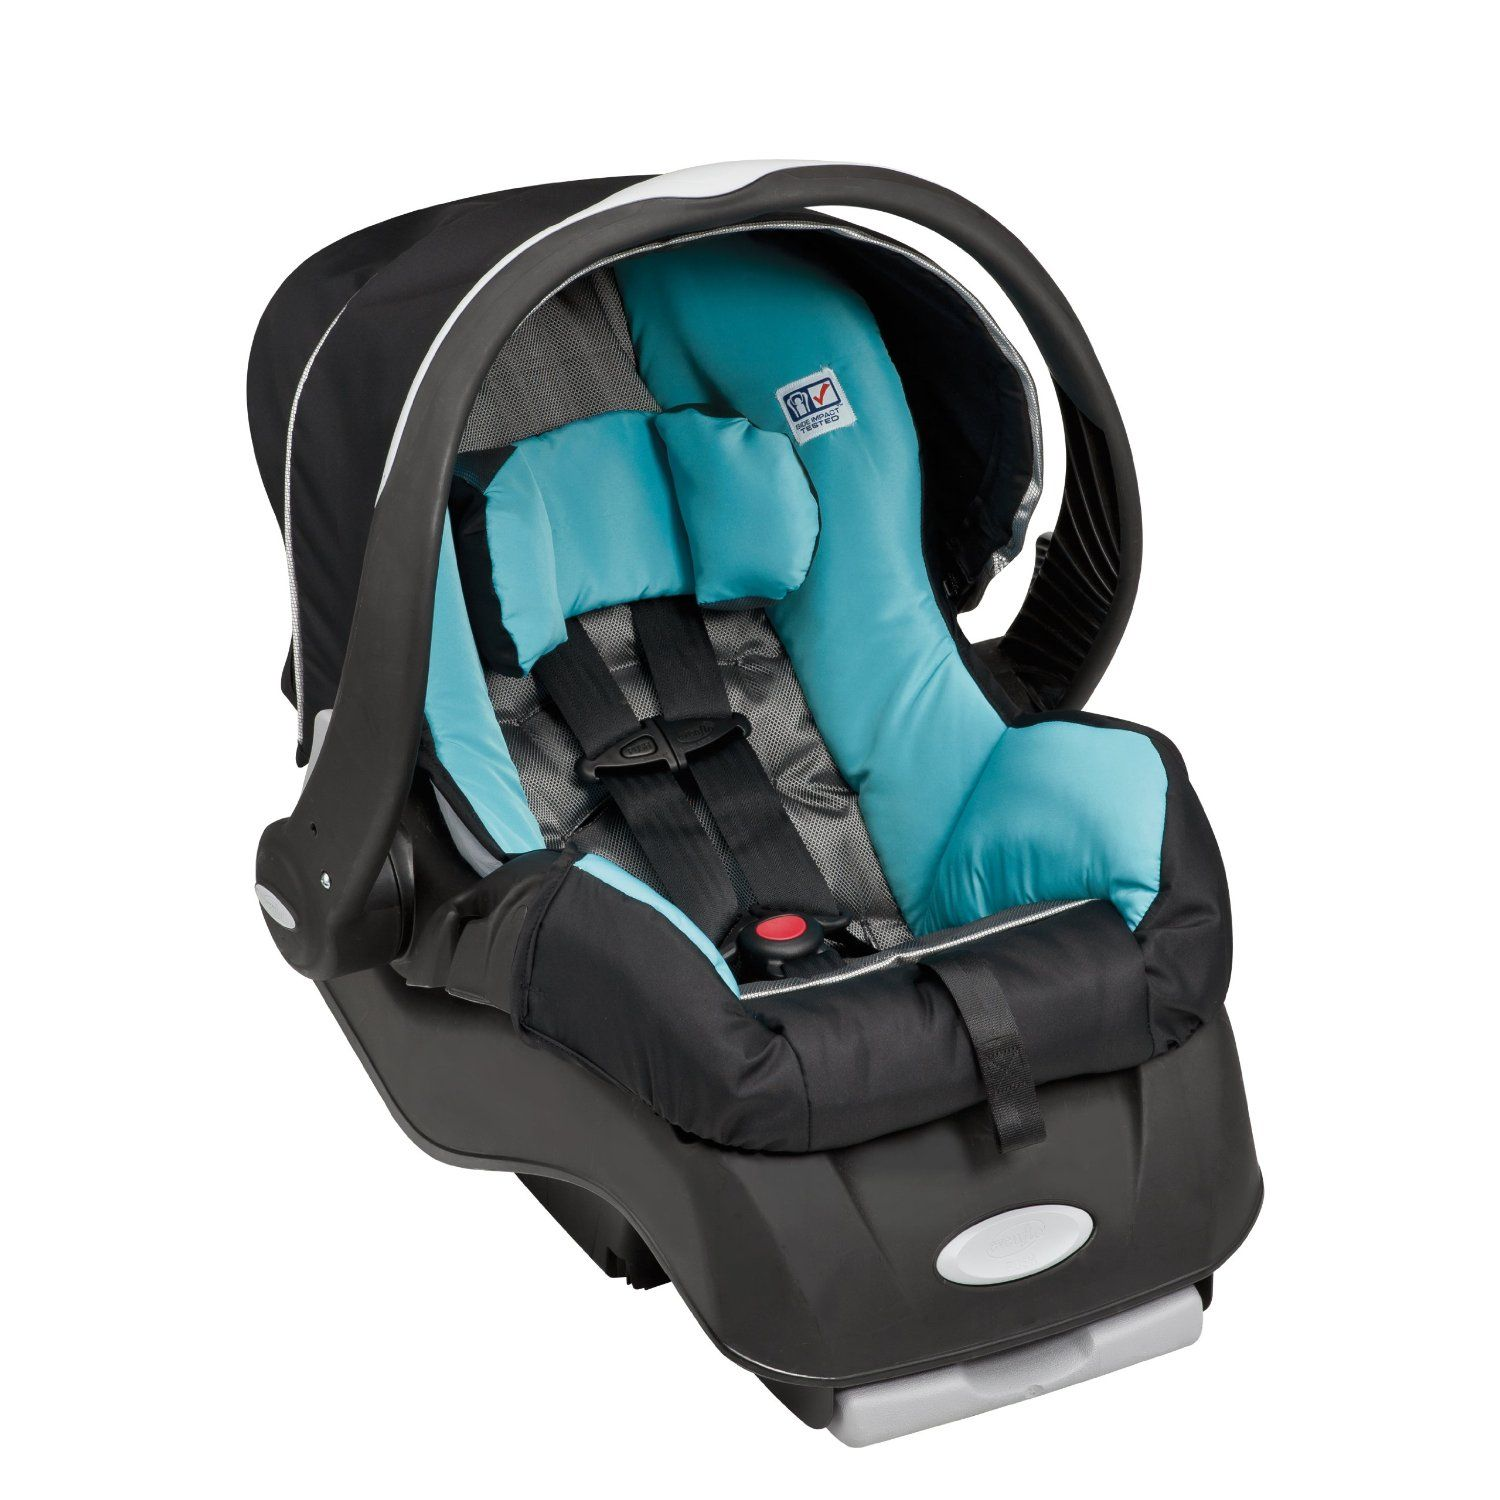 Evenflo FeatherLite 200 Stroller with Embrace